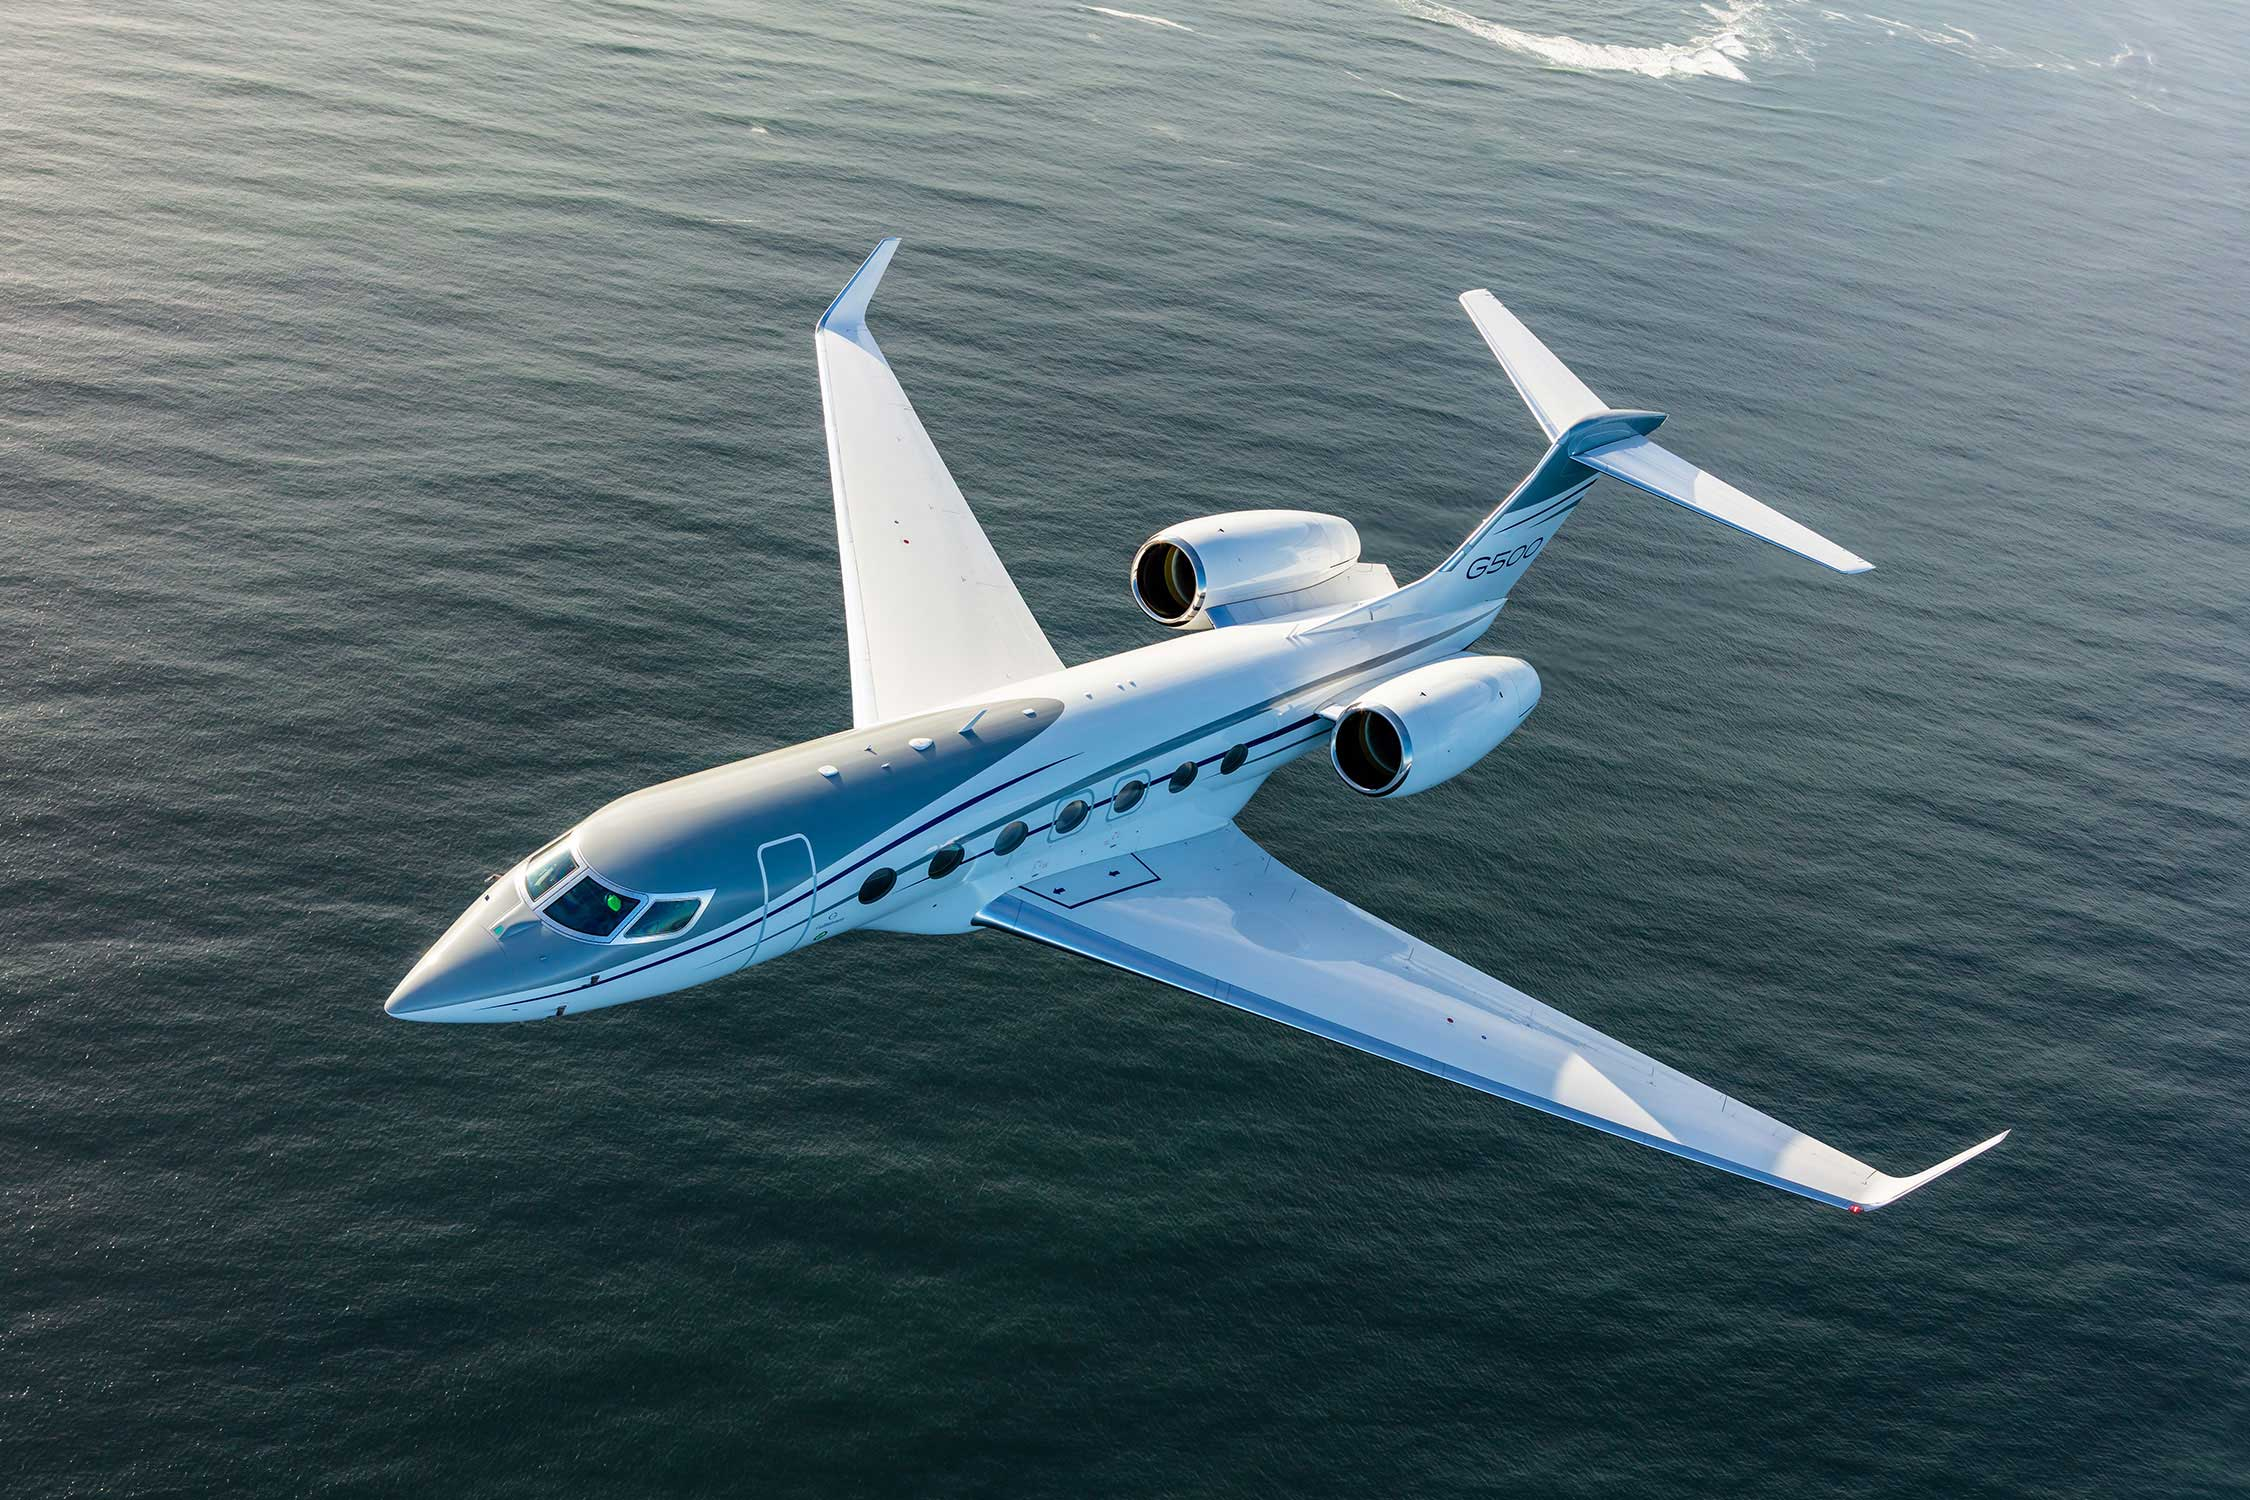 G500 aircraft flying above the ocean